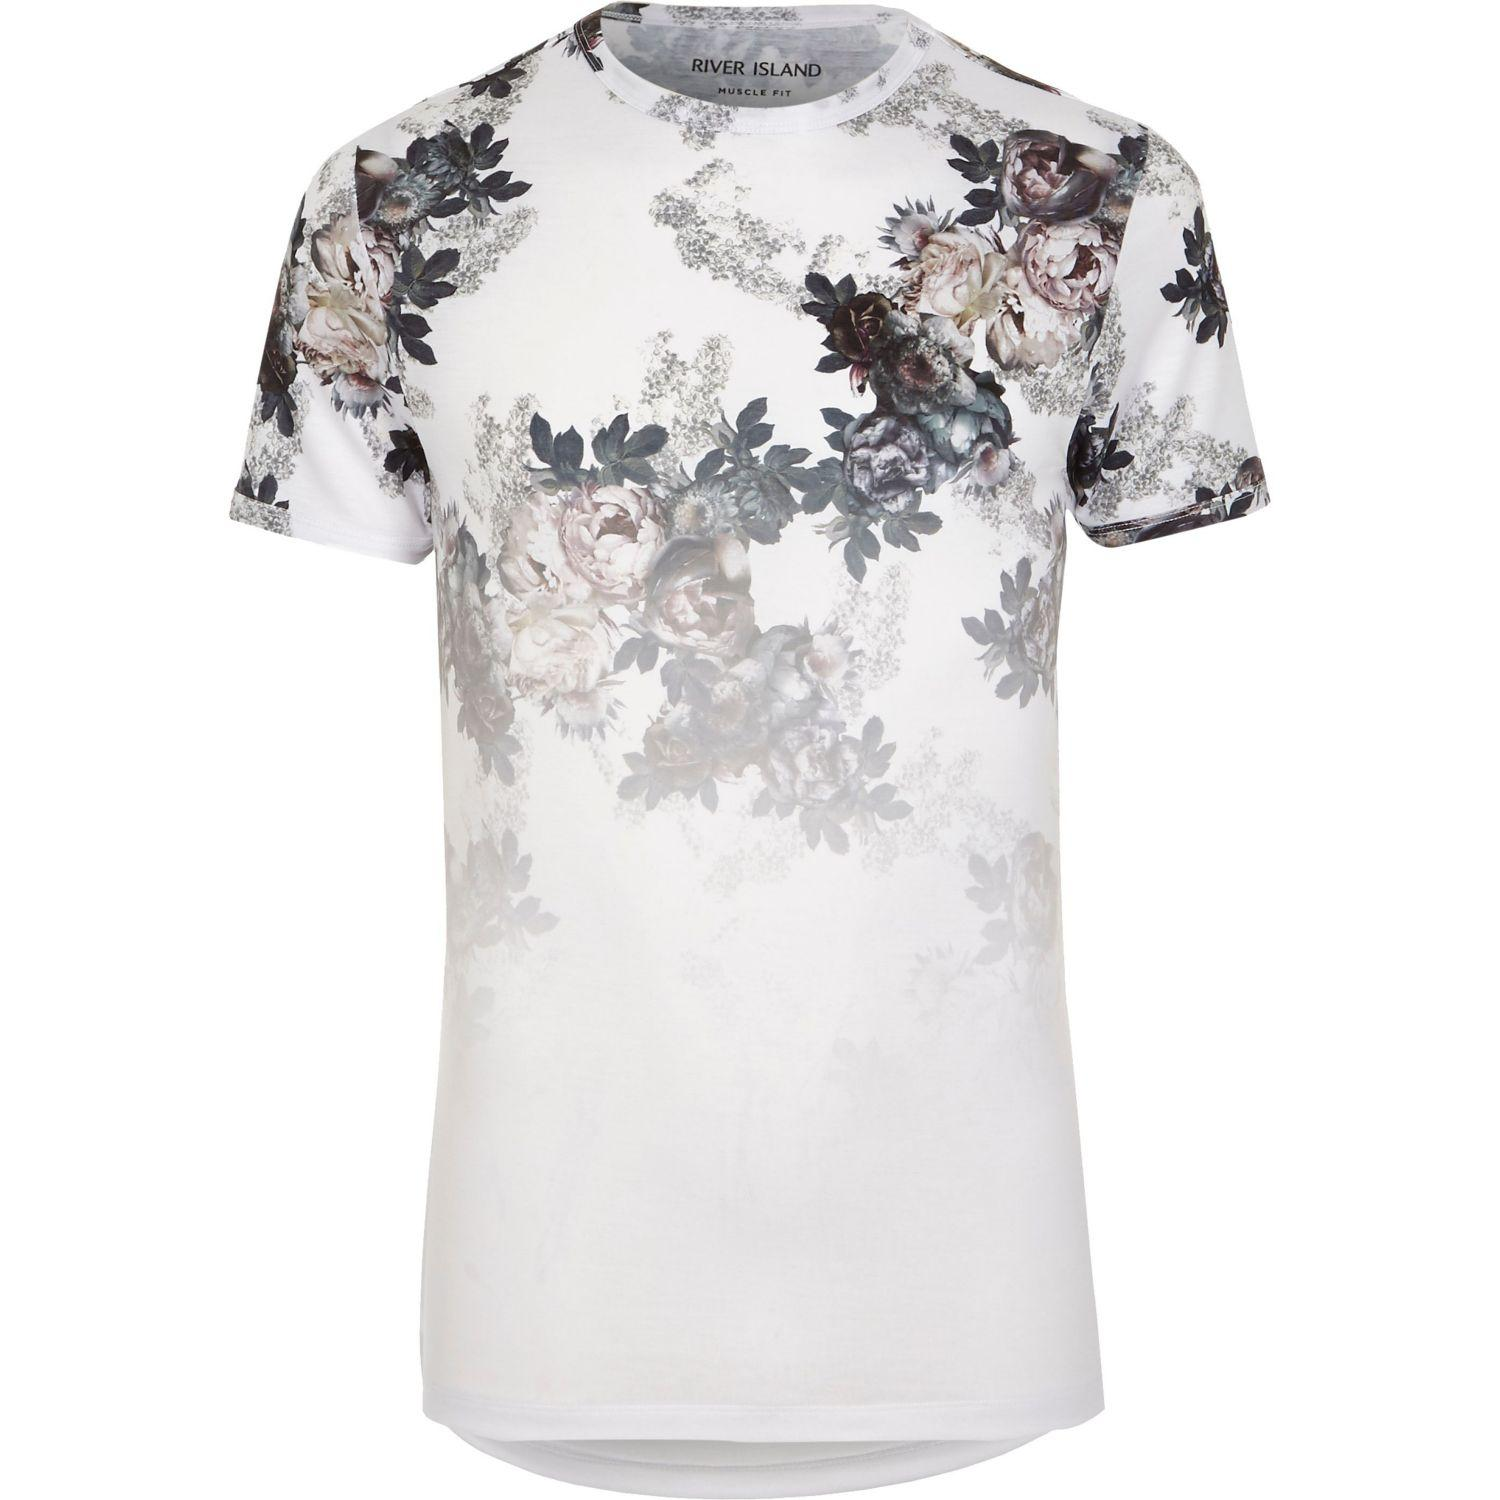 River island white floral fade print muscle fit t shirt in for Mens white floral shirt